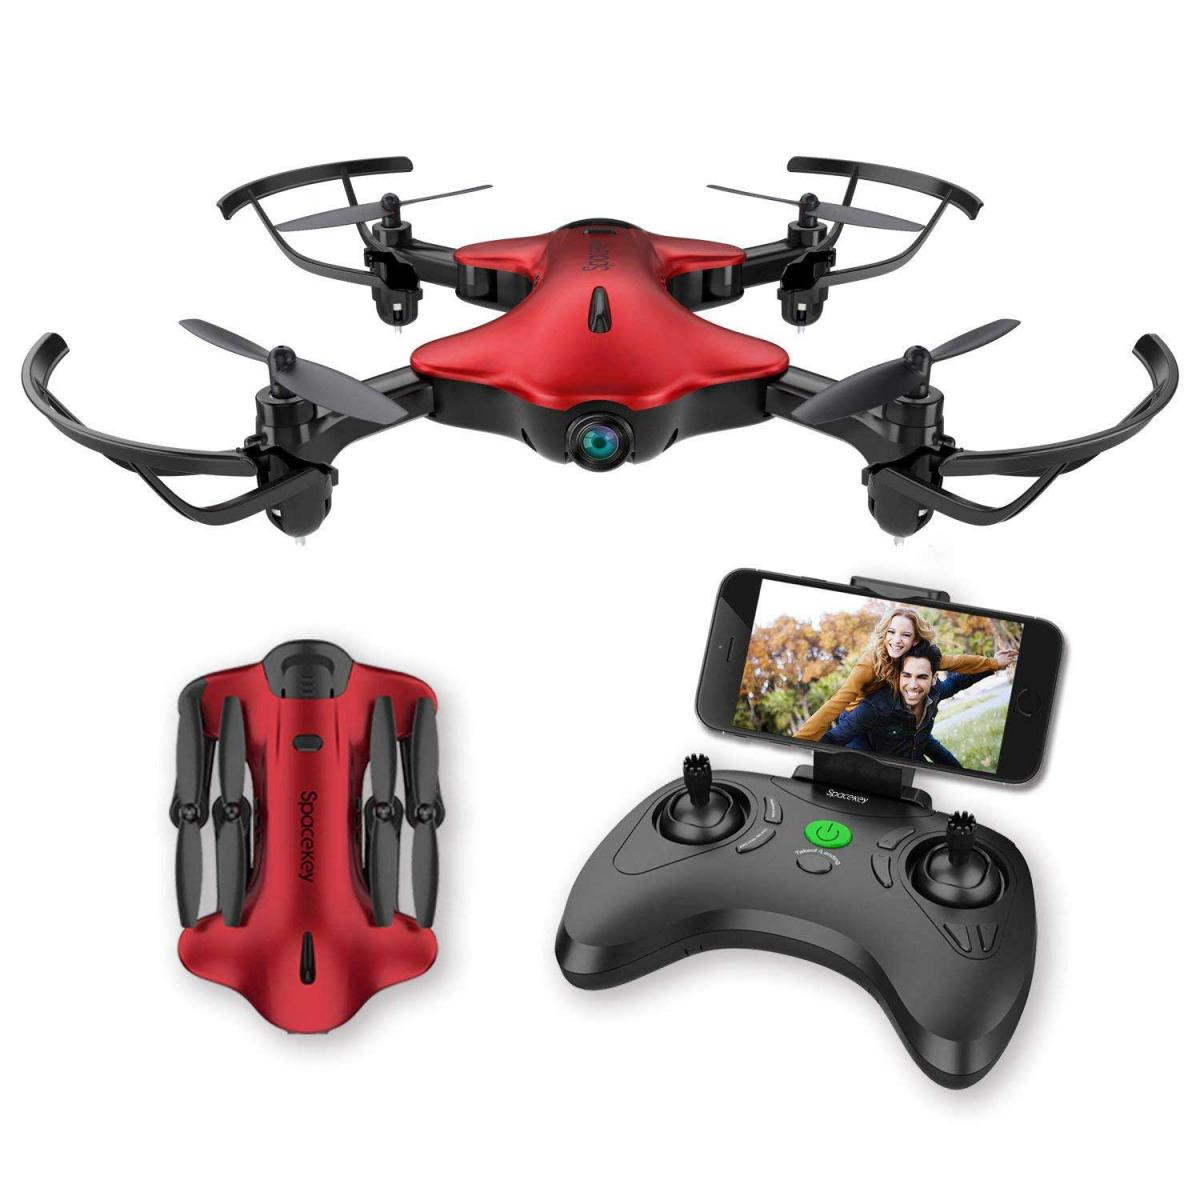 Spacekey FPV Wi-Fi Drone with Camera